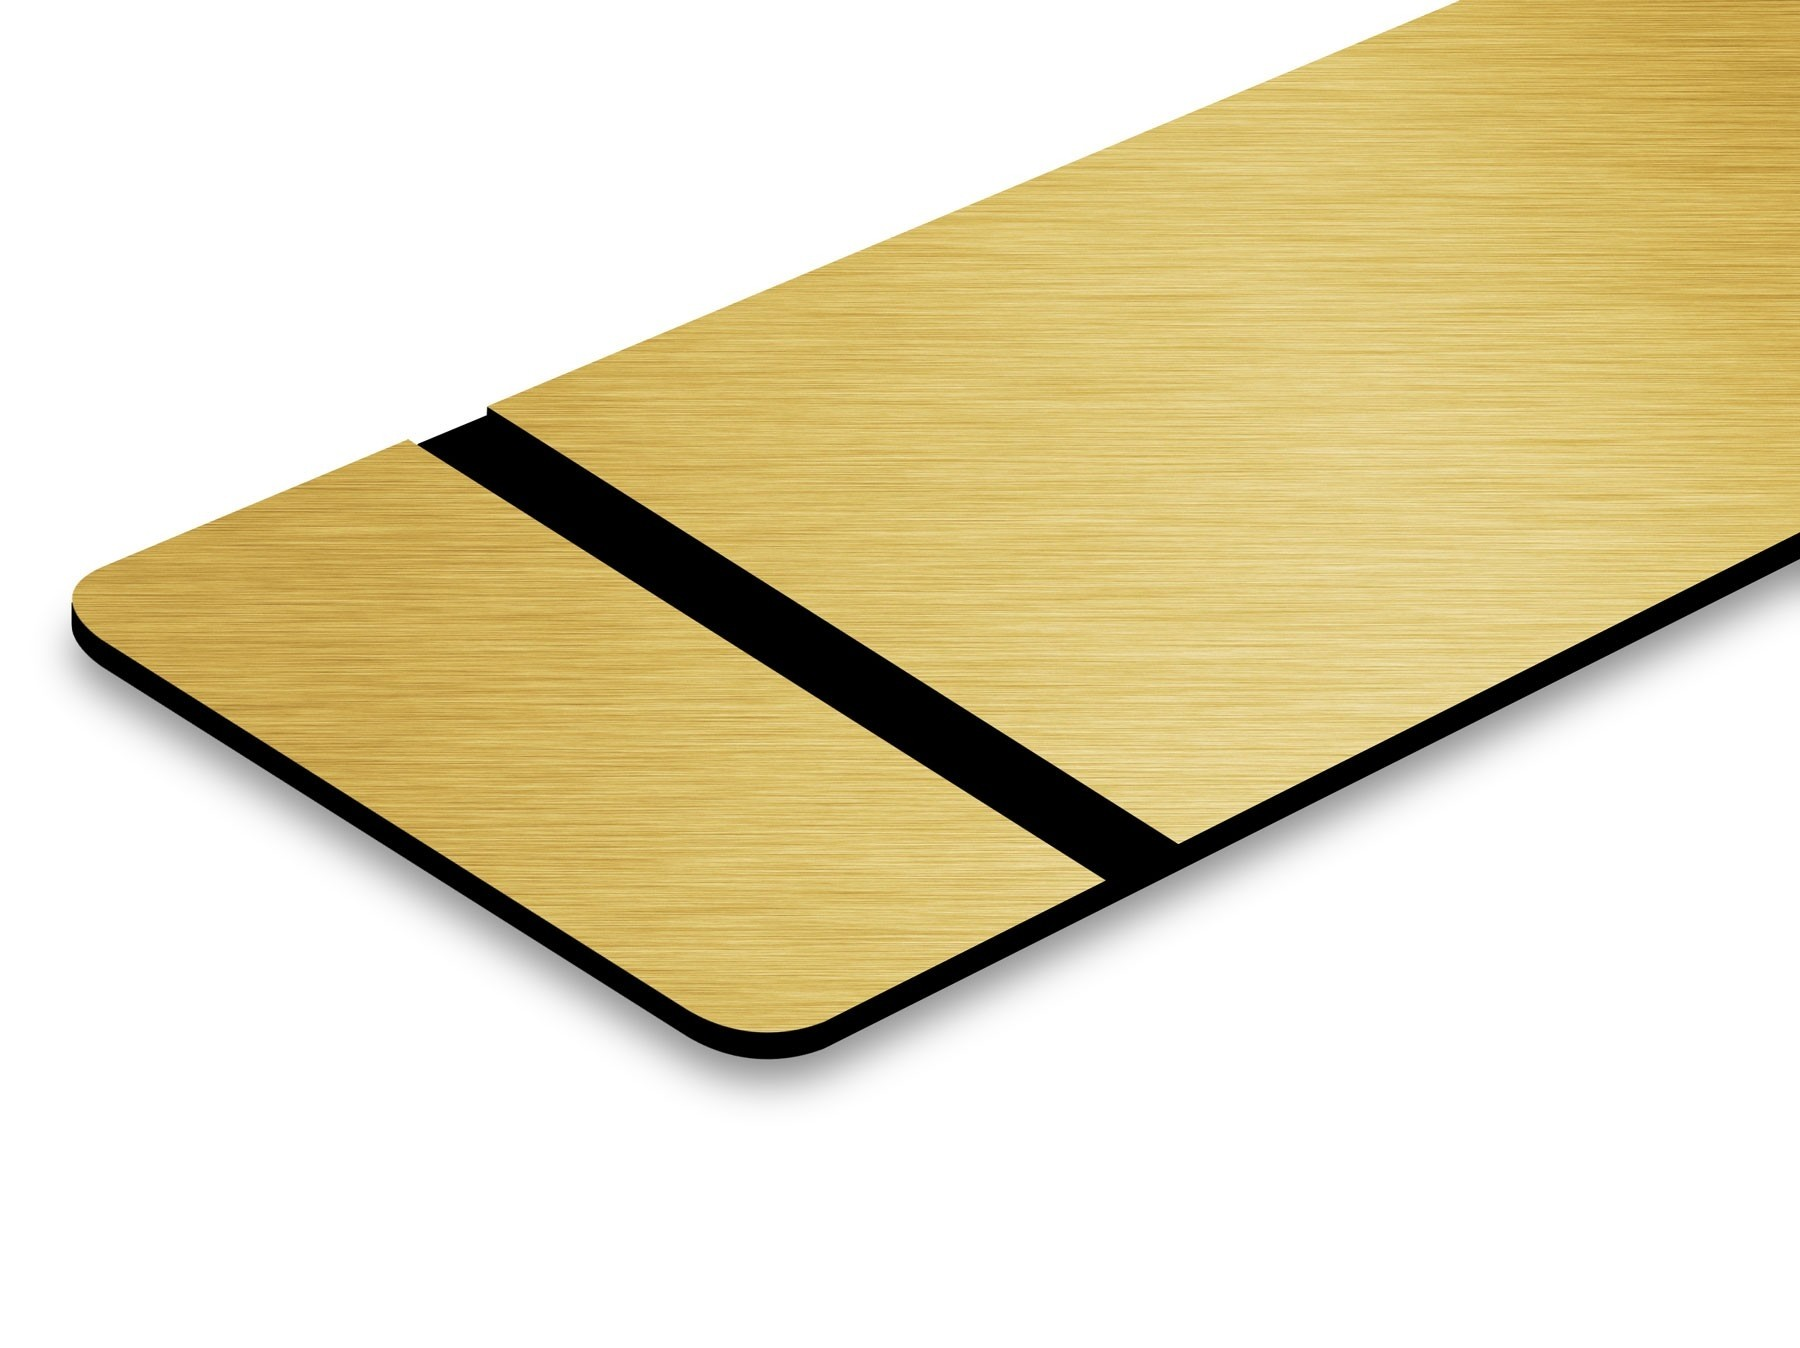 TroLase Thins, Brushed Gold/Black, 2ply, 0.5 mm